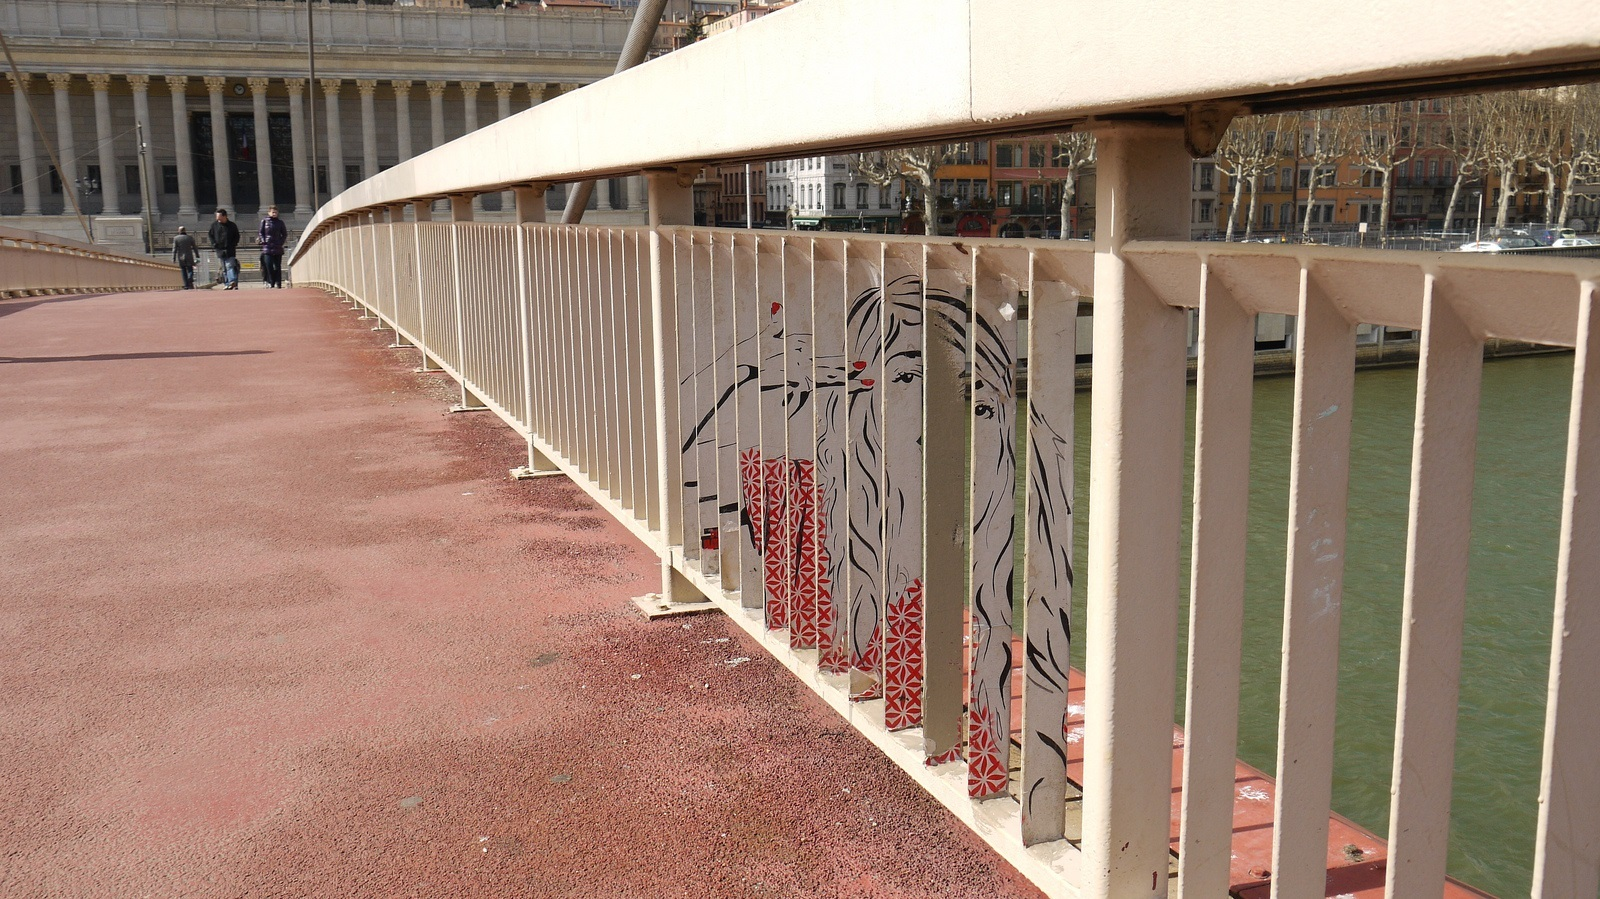 Art on bridge in lyon france